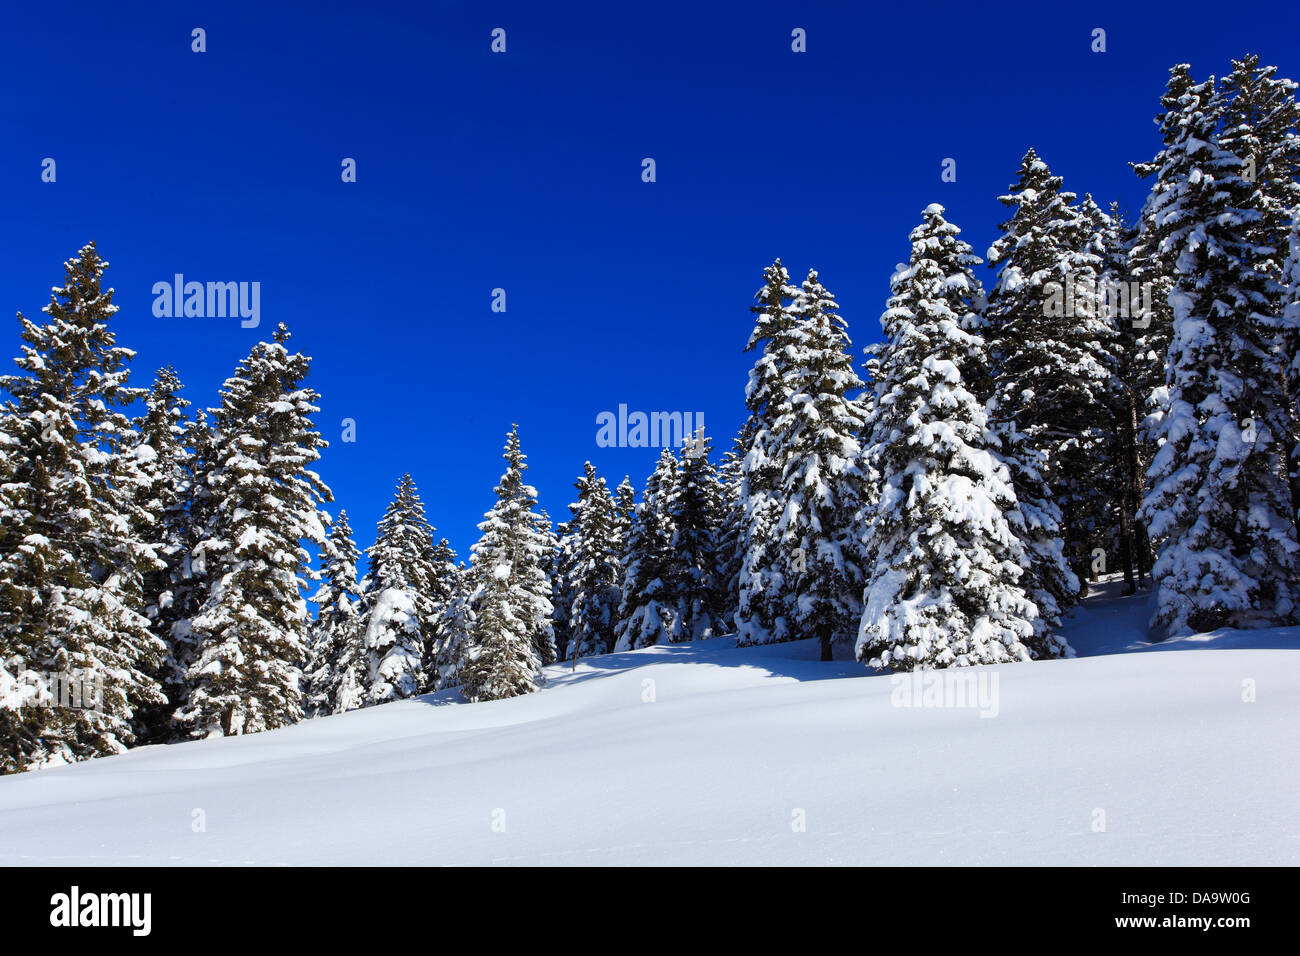 Alps, trees, spruce, spruces, sky, snow, Switzerland, Europe, sun, sunshine, fir, firs, wood, forest, winter, alpine, - Stock Image